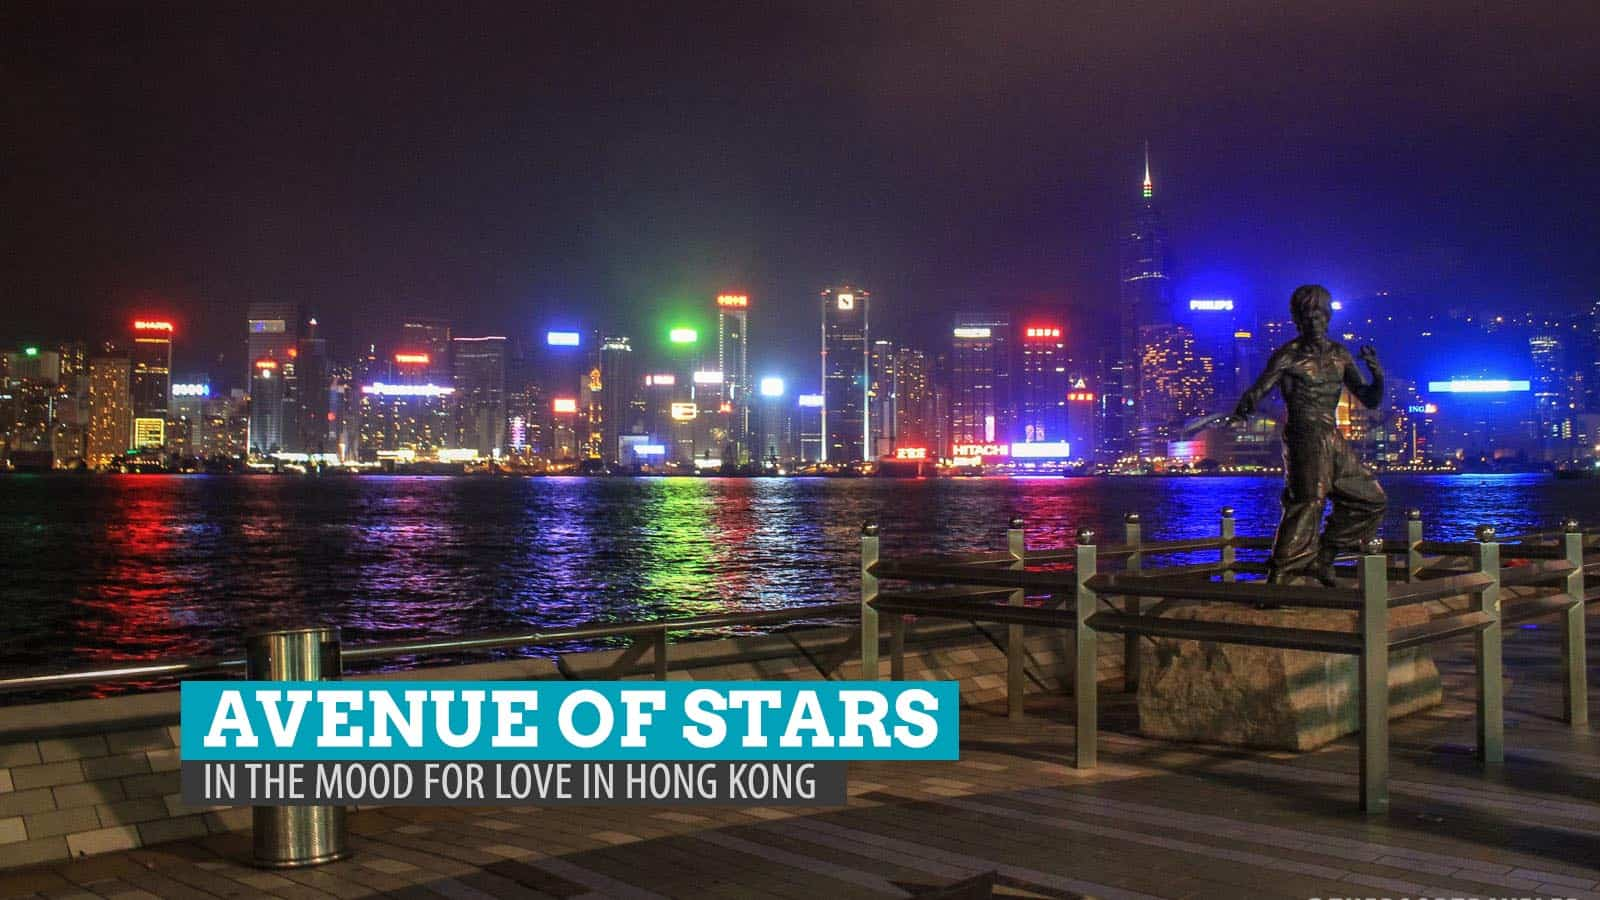 Hong Kong Avenue of Stars